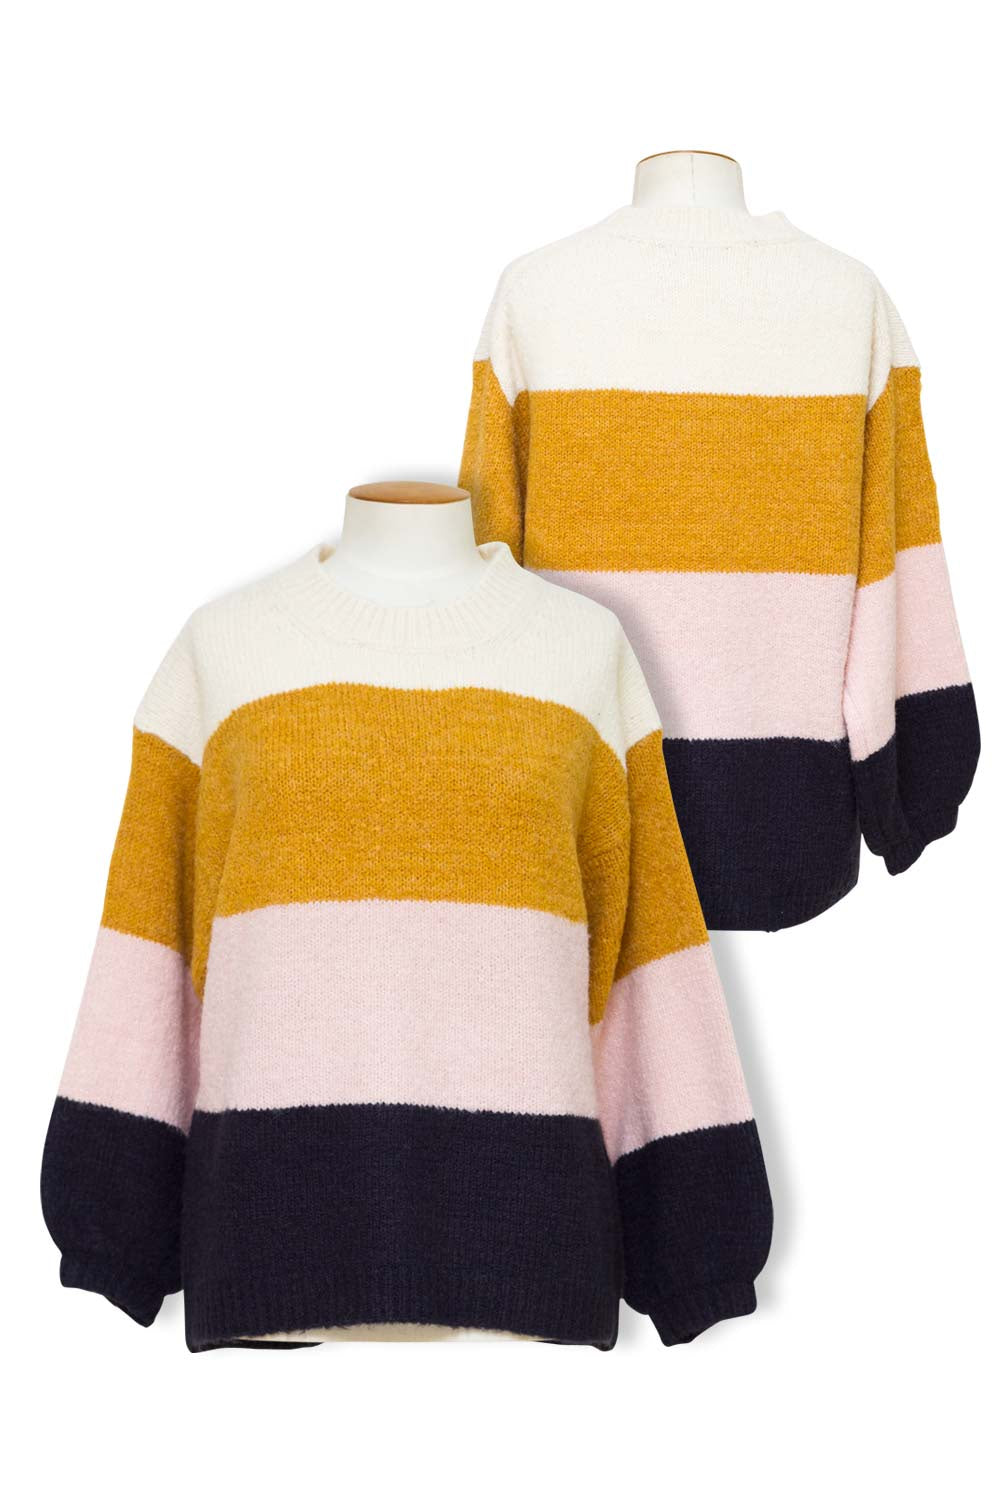 berlin-oversize-colour-block-jumper